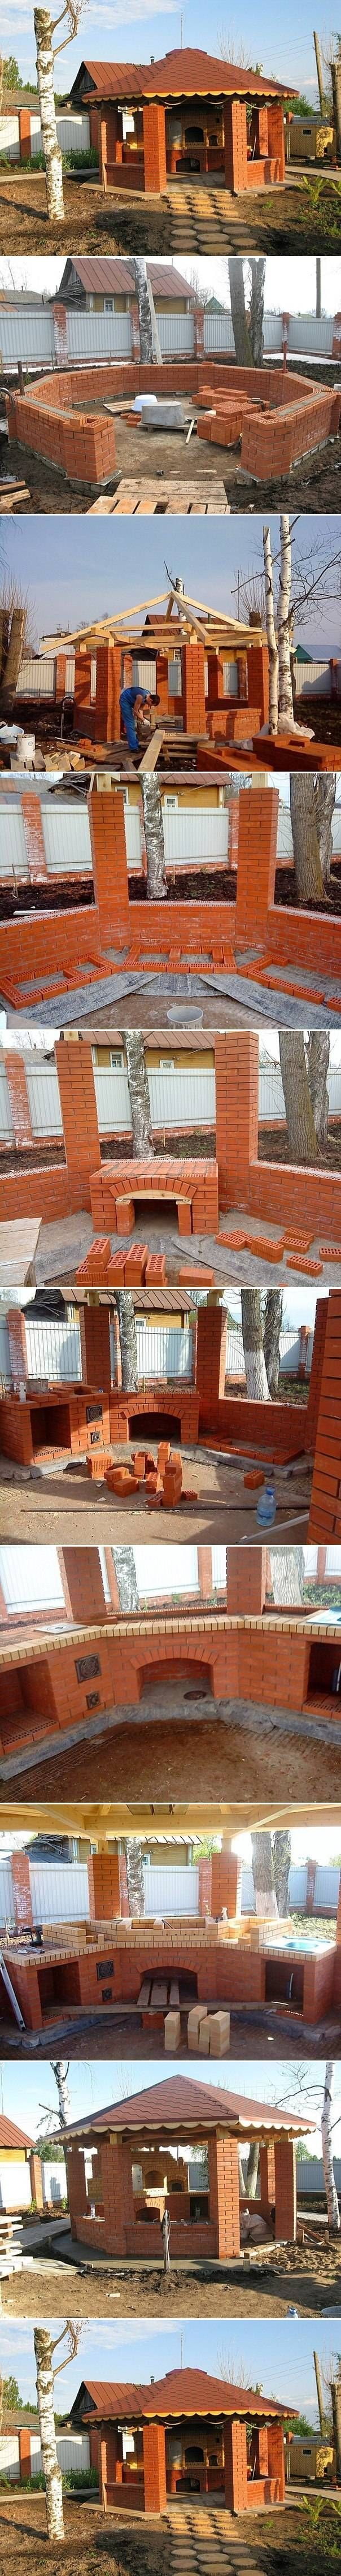 DIY Gazebo With Barbecue @Tammy Genest ~ Paul NEEDS to build this in your big side yard! Minus the roof